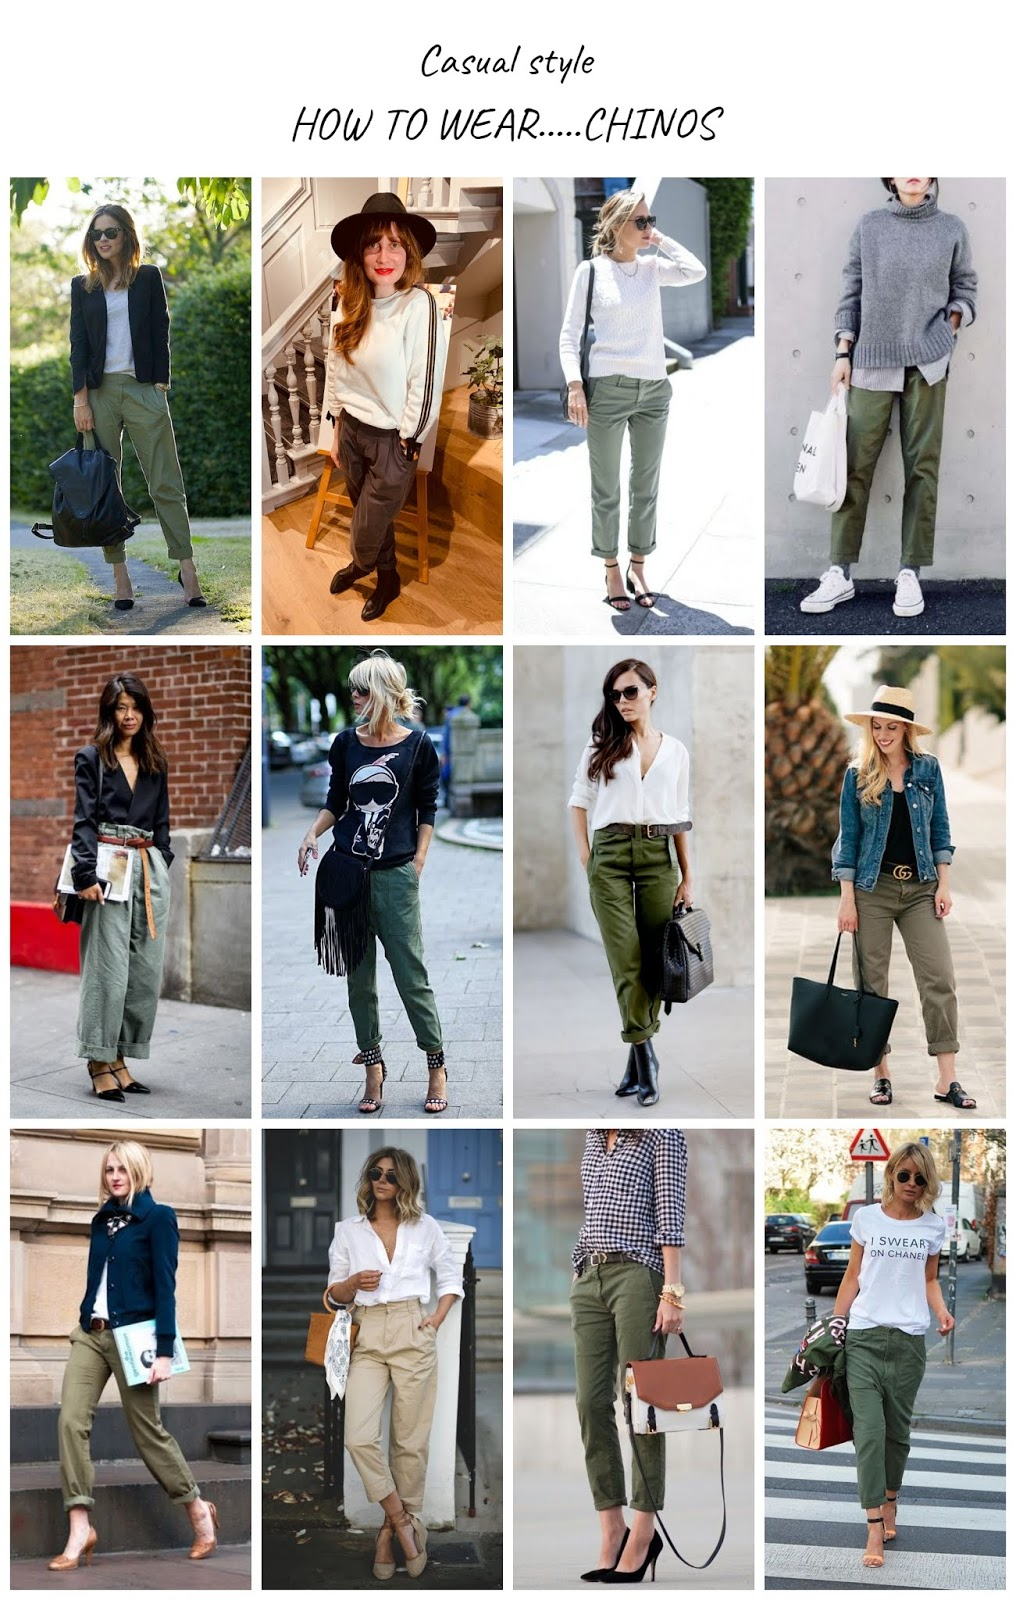 How to Wear: Chinos